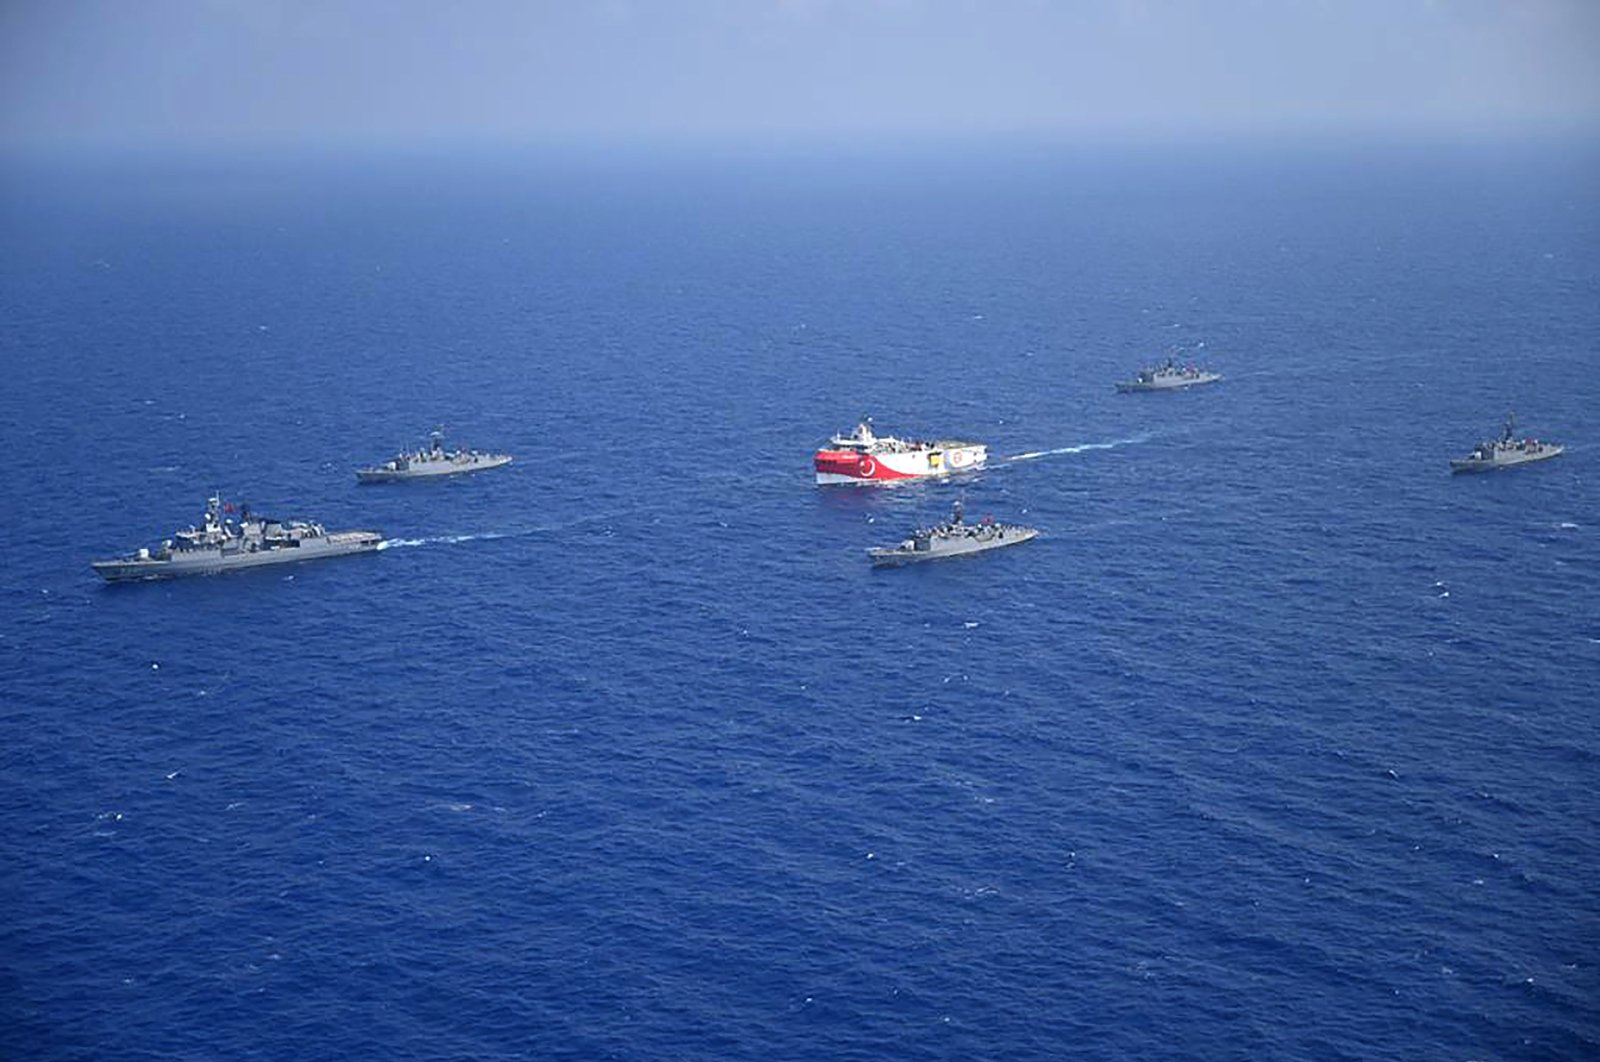 Turkish seismic research vessel Oruç Reis (C) is escorted by Turkish naval ships in the Mediterranean Sea, off Turkey's southern Antalya province, Aug. 12, 2020. (Turkish Defense Ministry handout via AFP Photo)